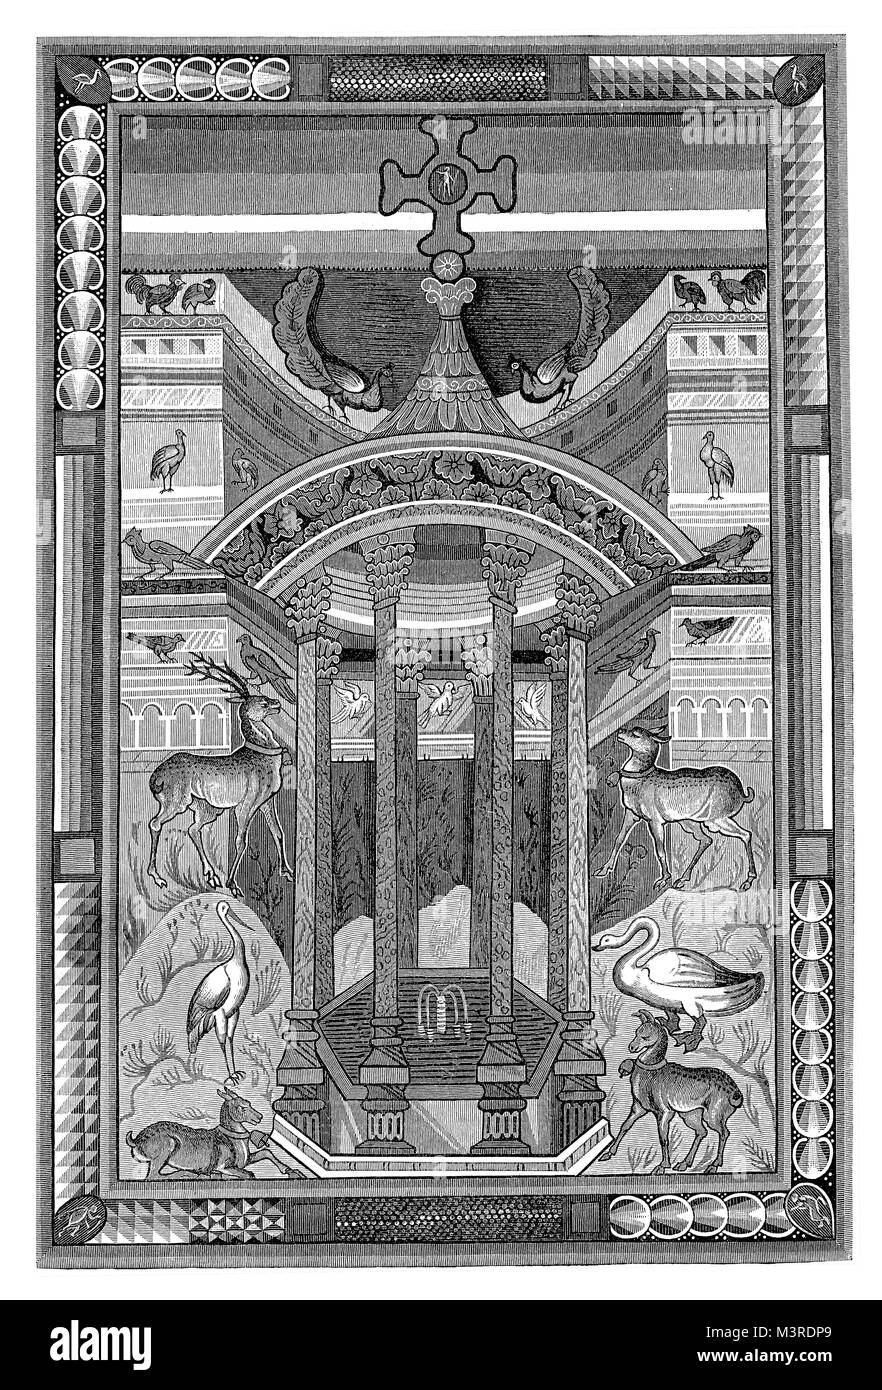 Miniature from gospel book of  Charlemagne or Charles the Great, IX century, vintage engraving - Stock Image